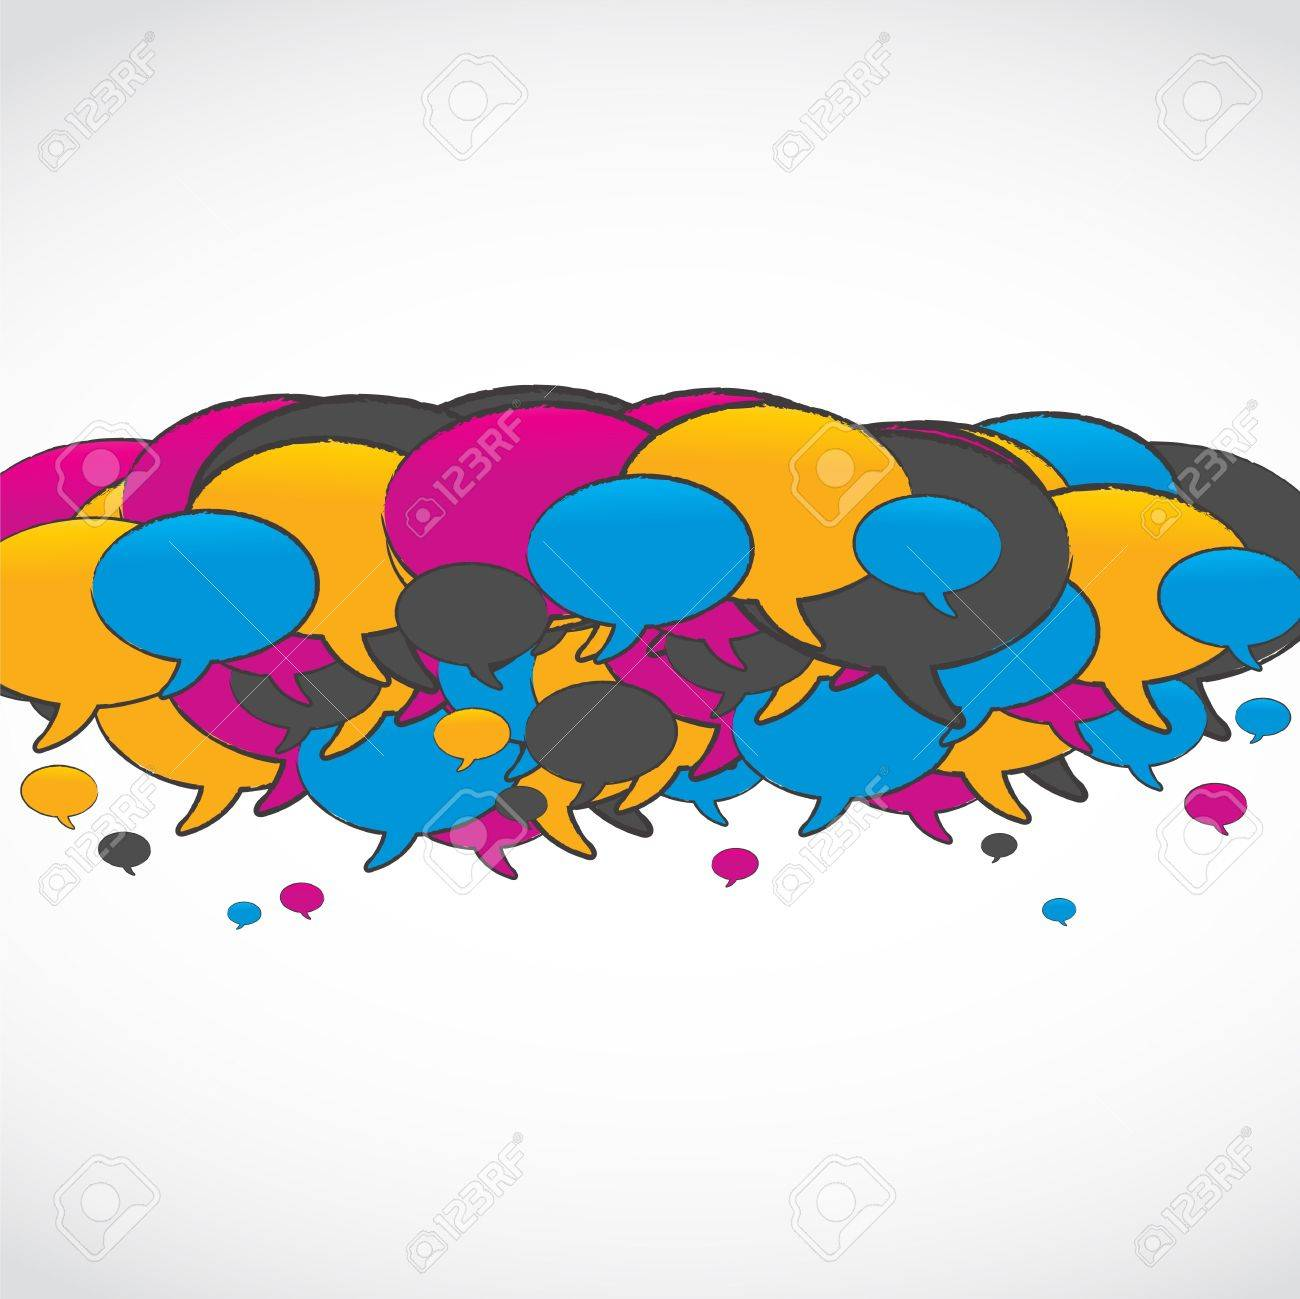 colorful social media speech bubbles Stock Vector - 15629113